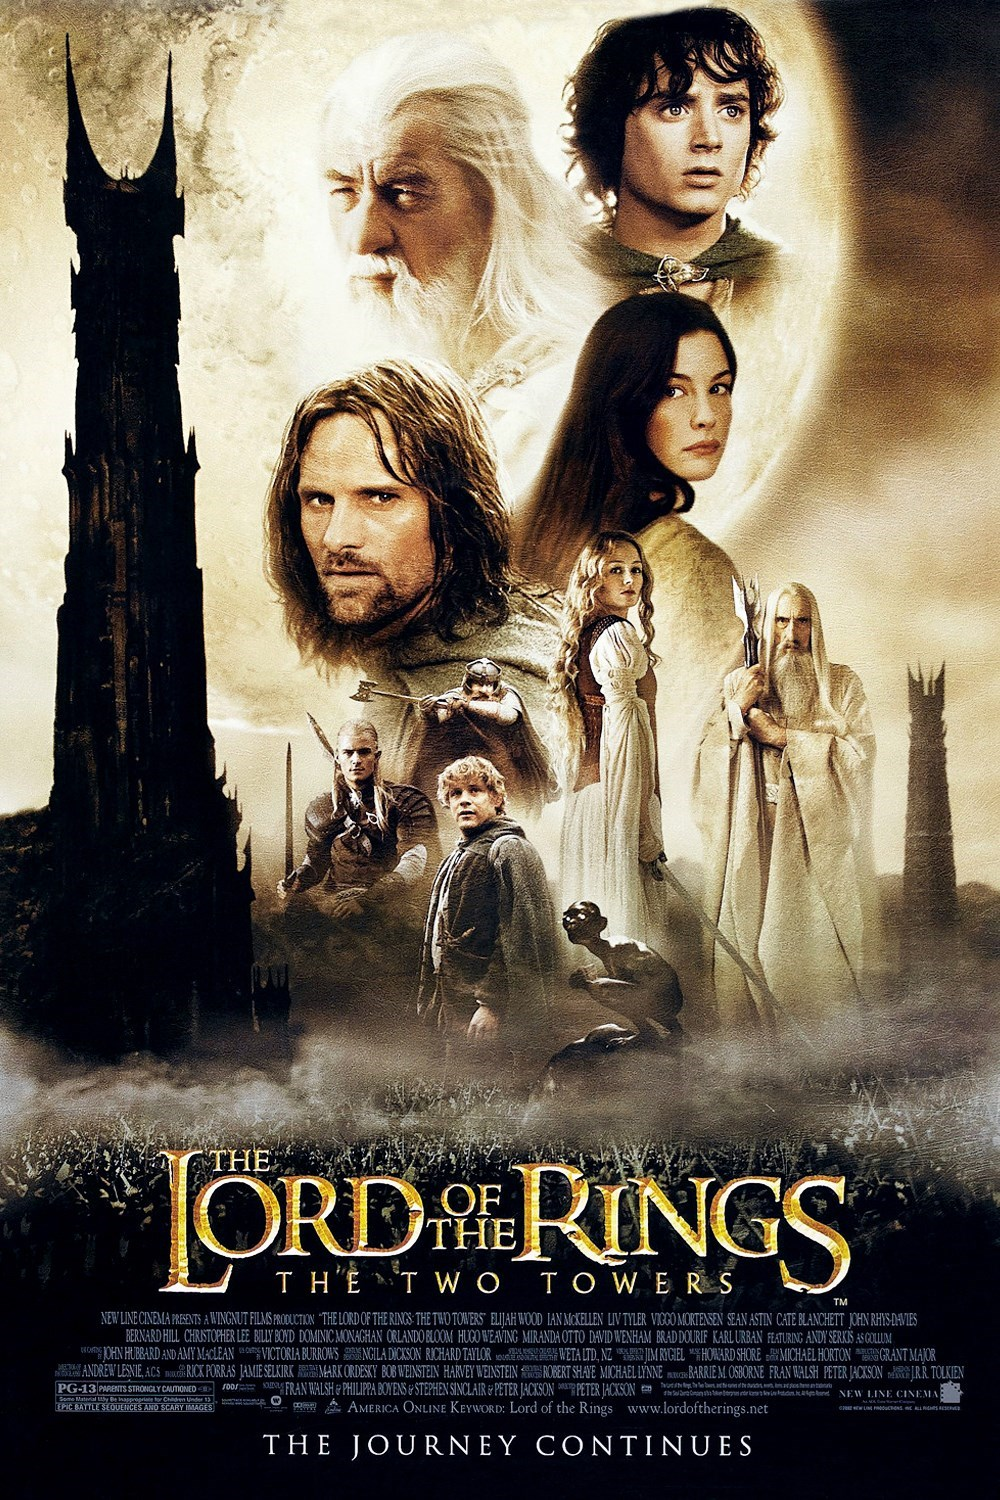 the-lord-of-the-rings-the-two-towers.18692.jpg